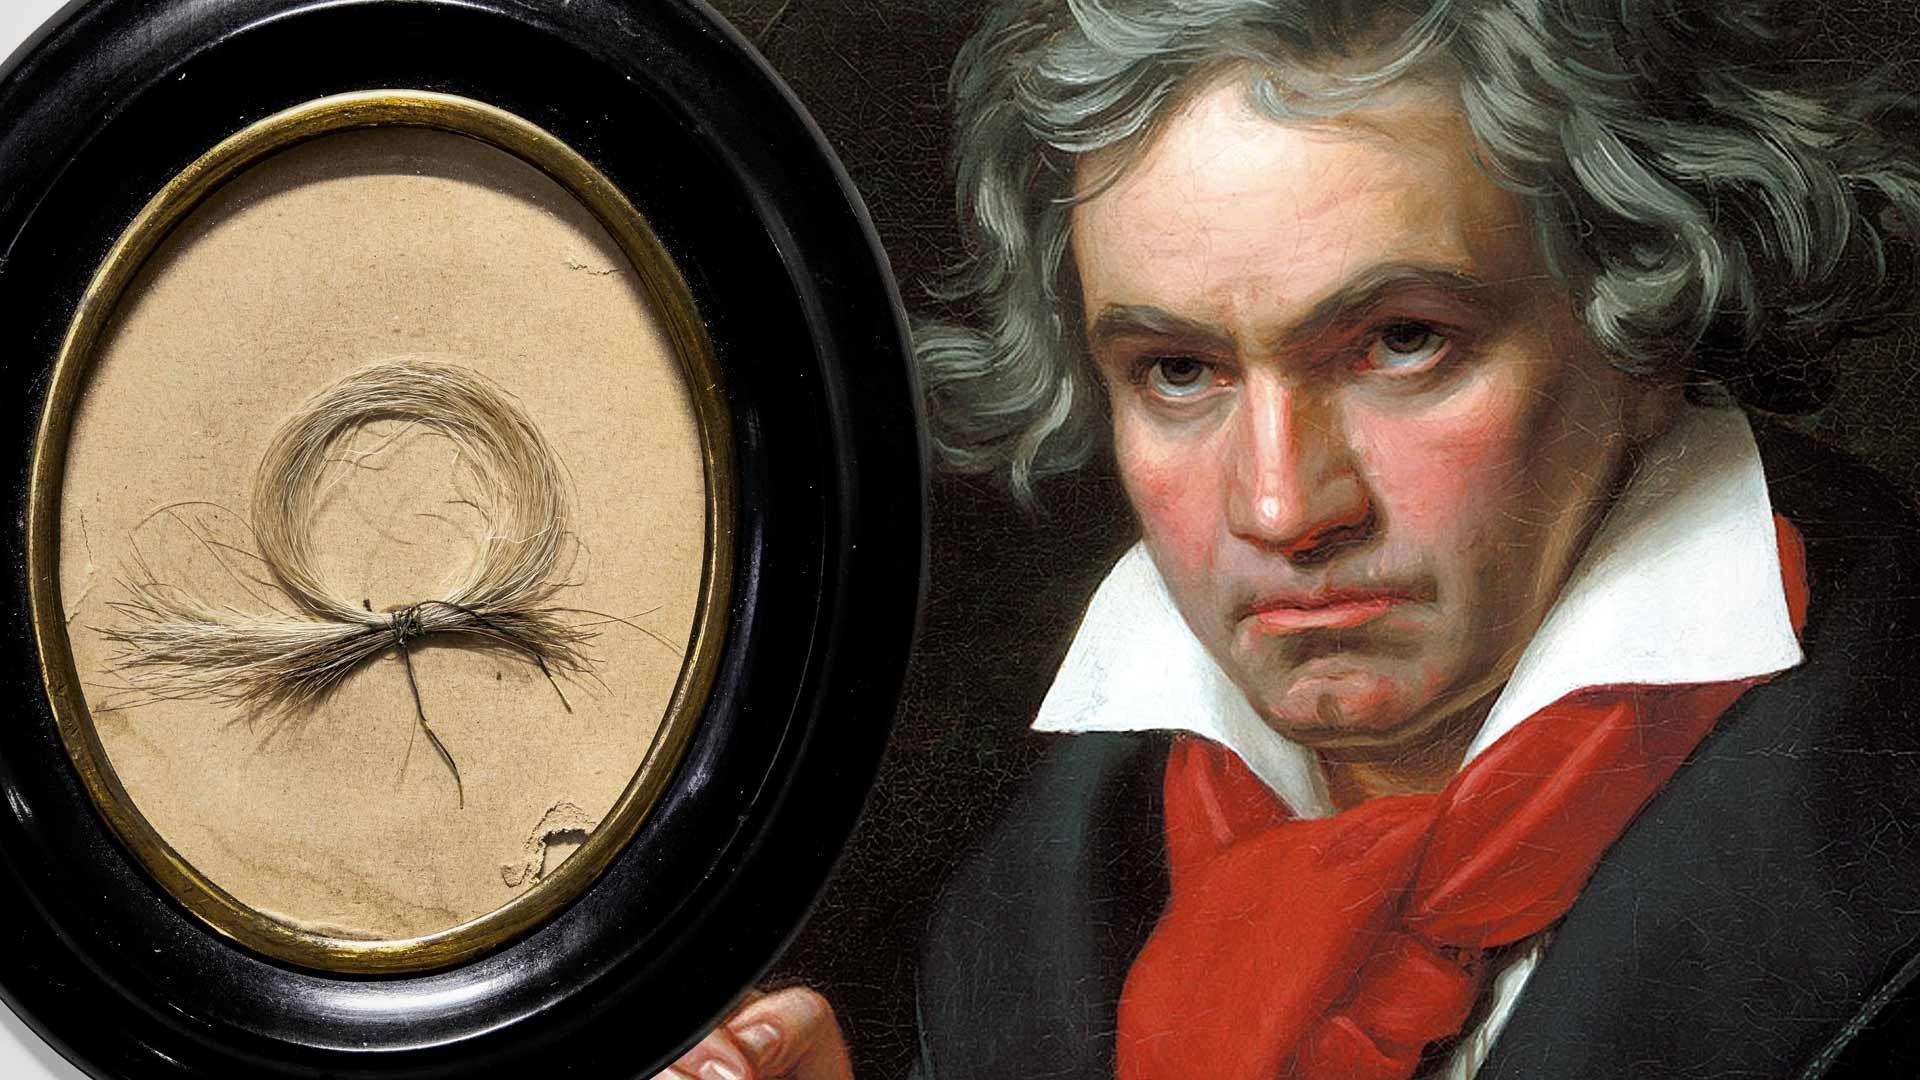 Beethoven's Hair Sells For $44,000 Dollars During Bizarre Auction